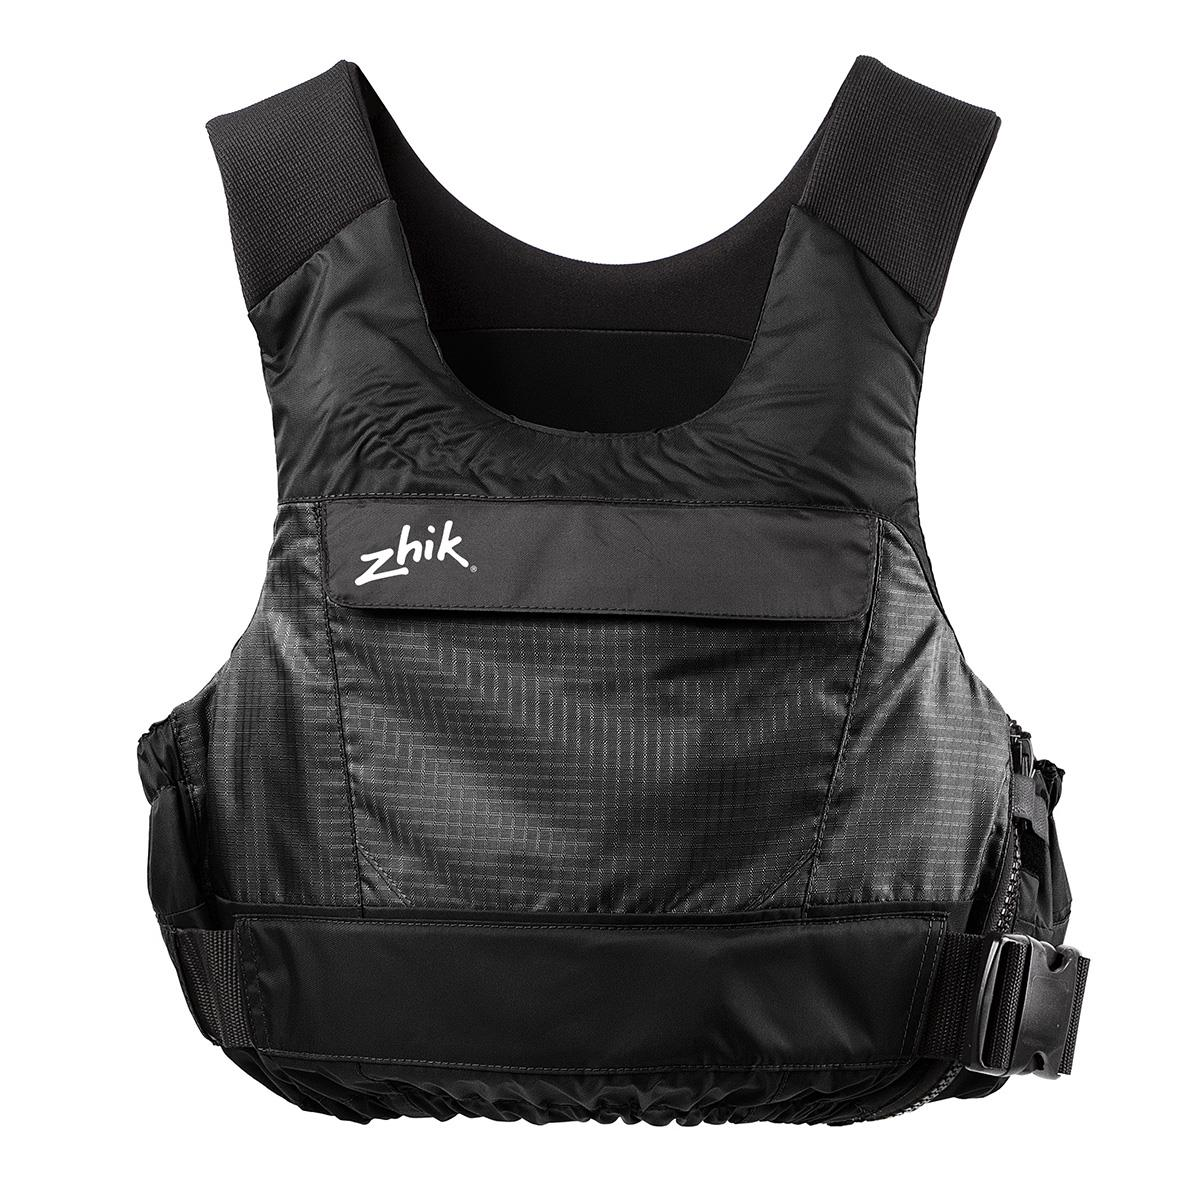 Zhik P3 PFD Buoyancy Aid - Black